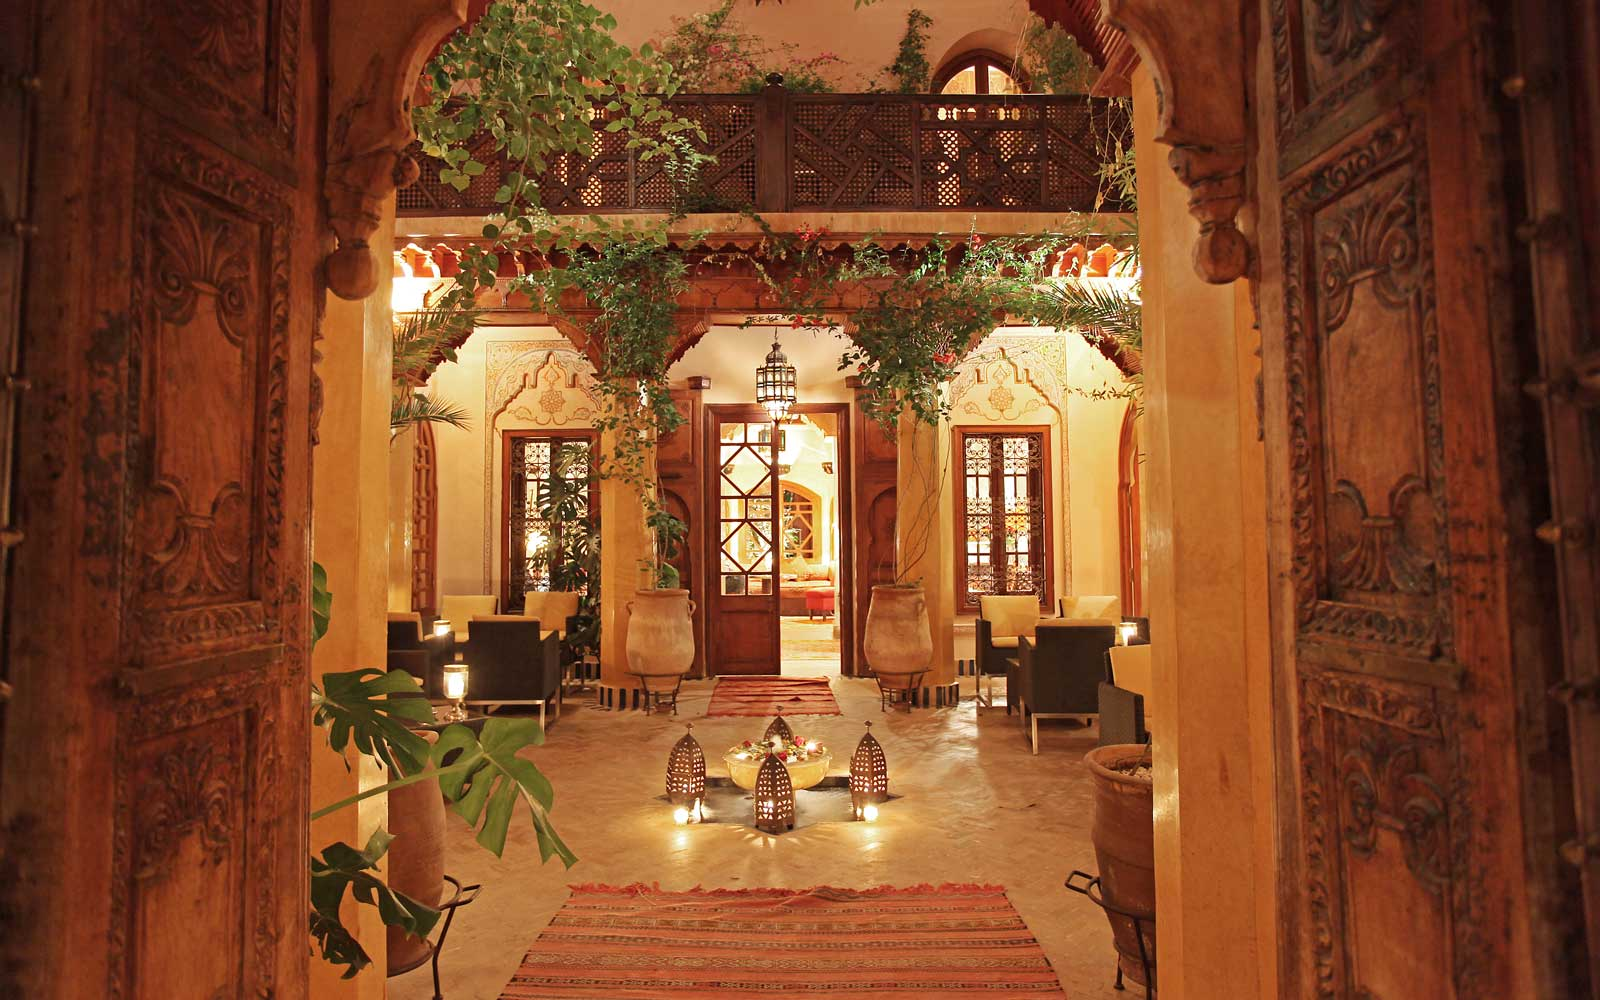 Entrance to La Maison Arabe, in Marrakech, Morocco